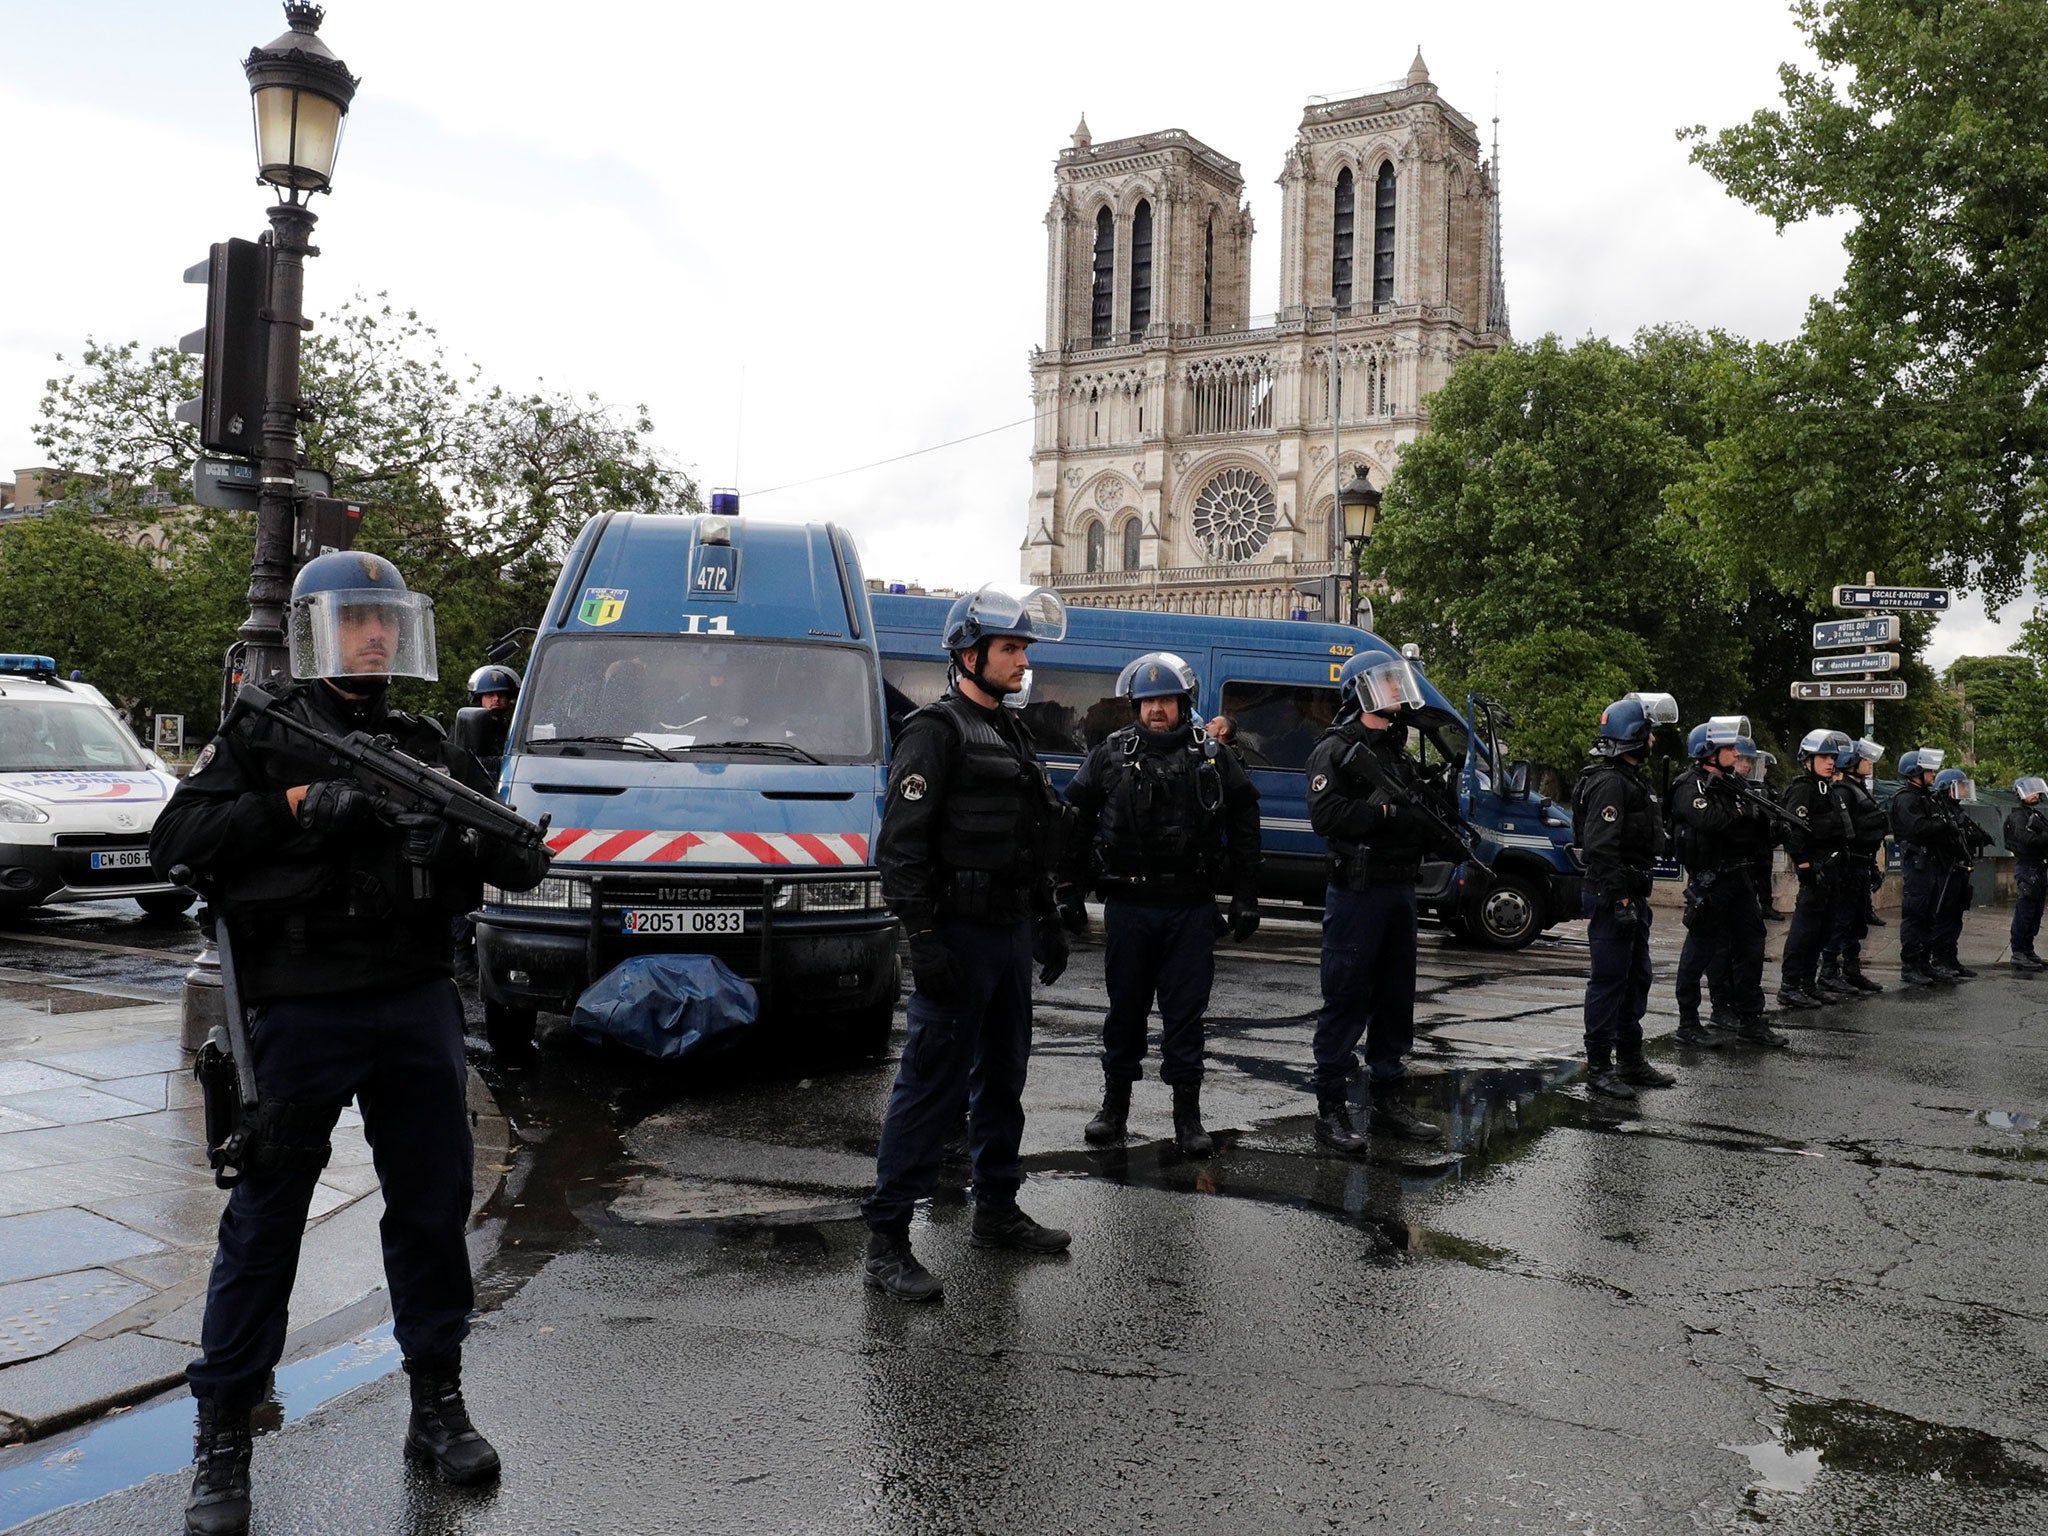 Paris police warn public to stay away from Notre Dame after incident